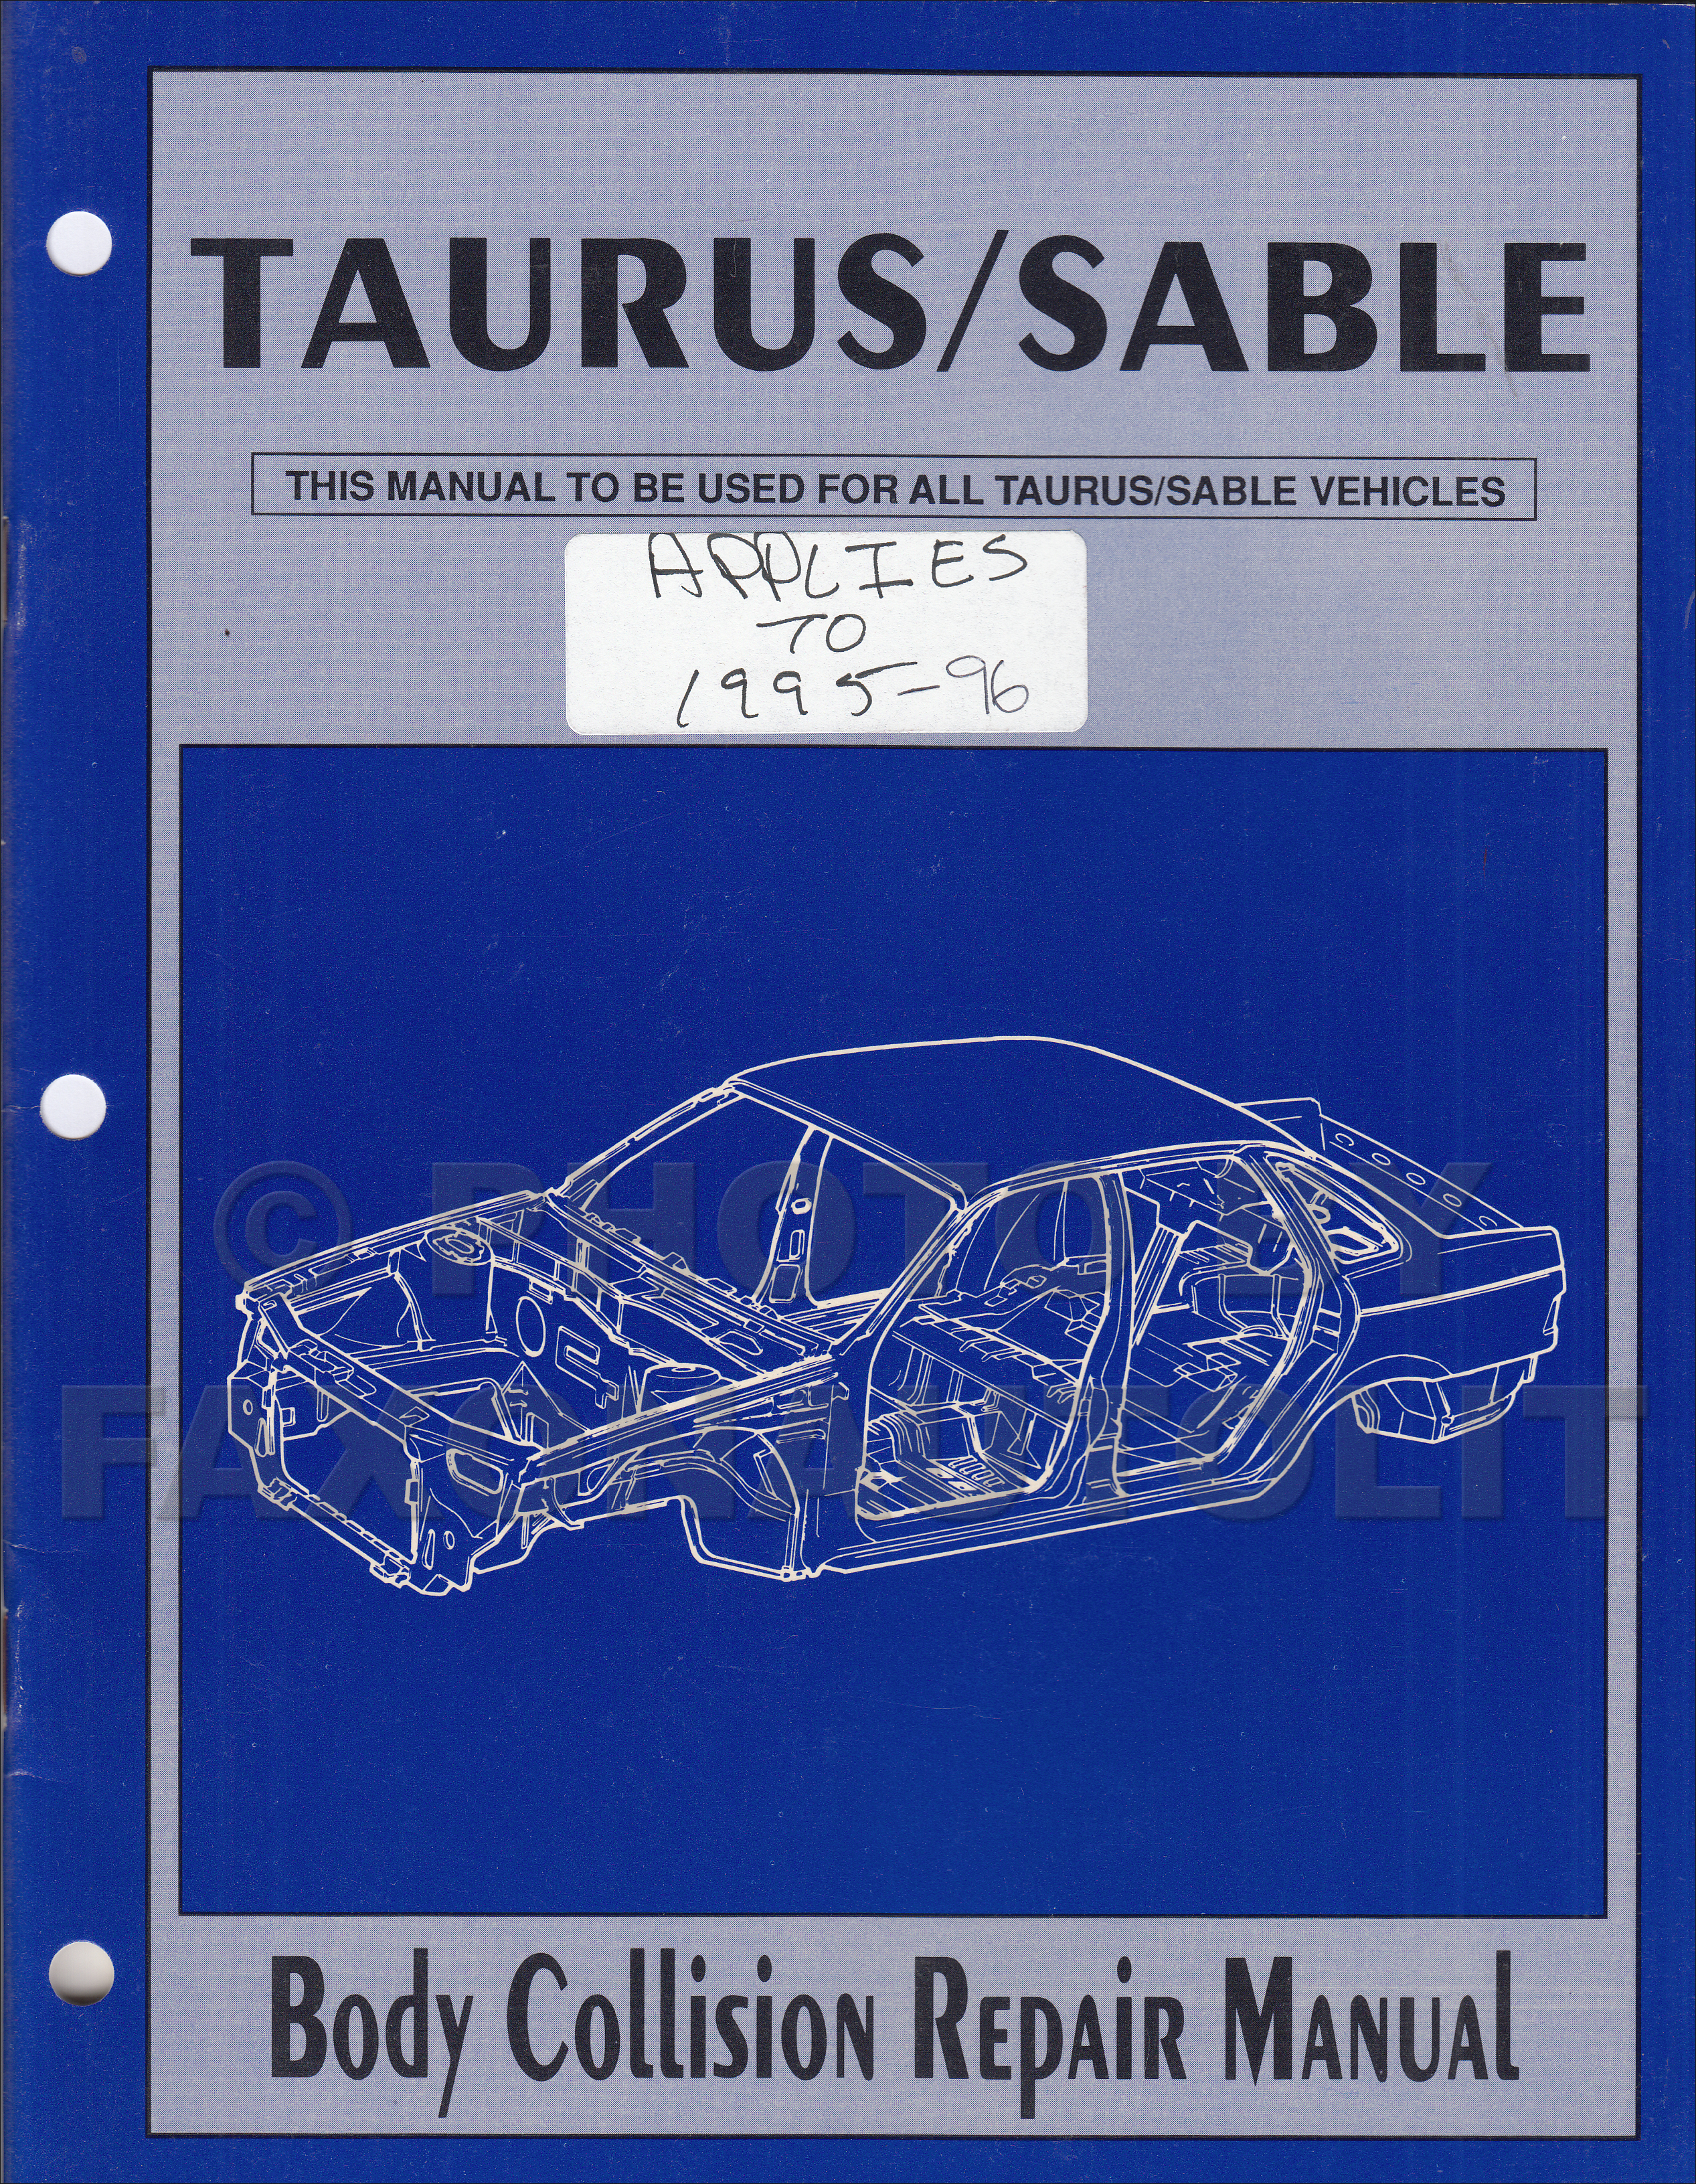 1993 ford taurus and mercury sable wiring diagram original 1986 1996 ford taurus mercury sable body collision repair shop manual original